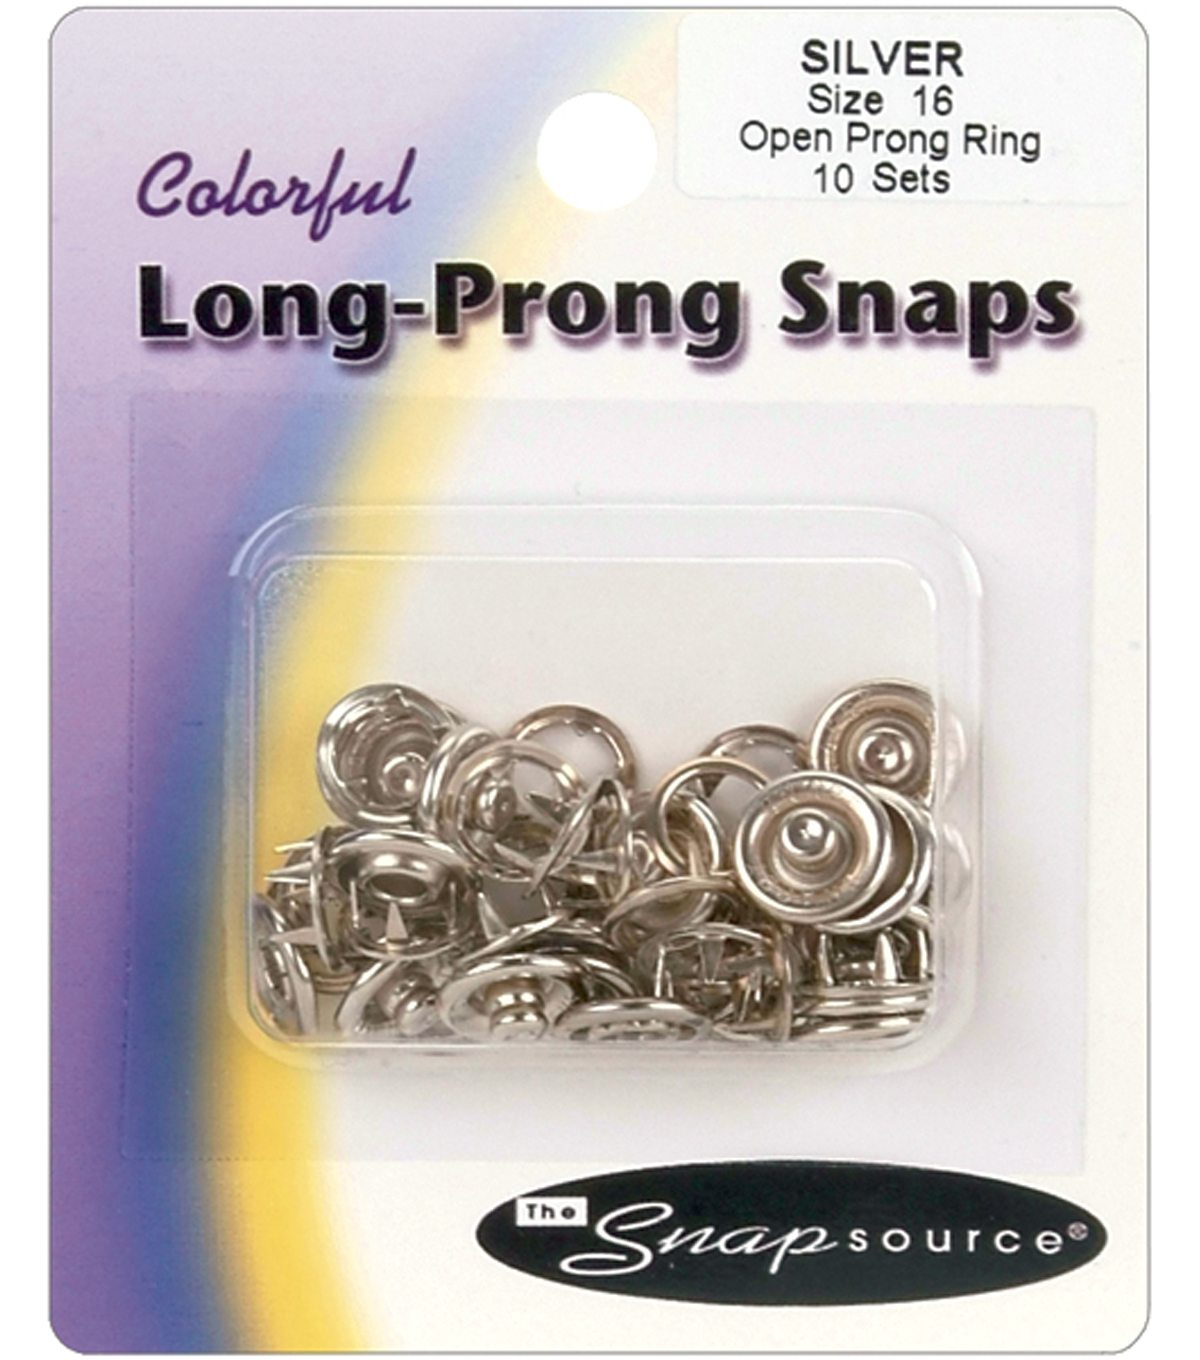 Open Prong Ring Snaps Size 16-10 Sets/Pkg.-Black